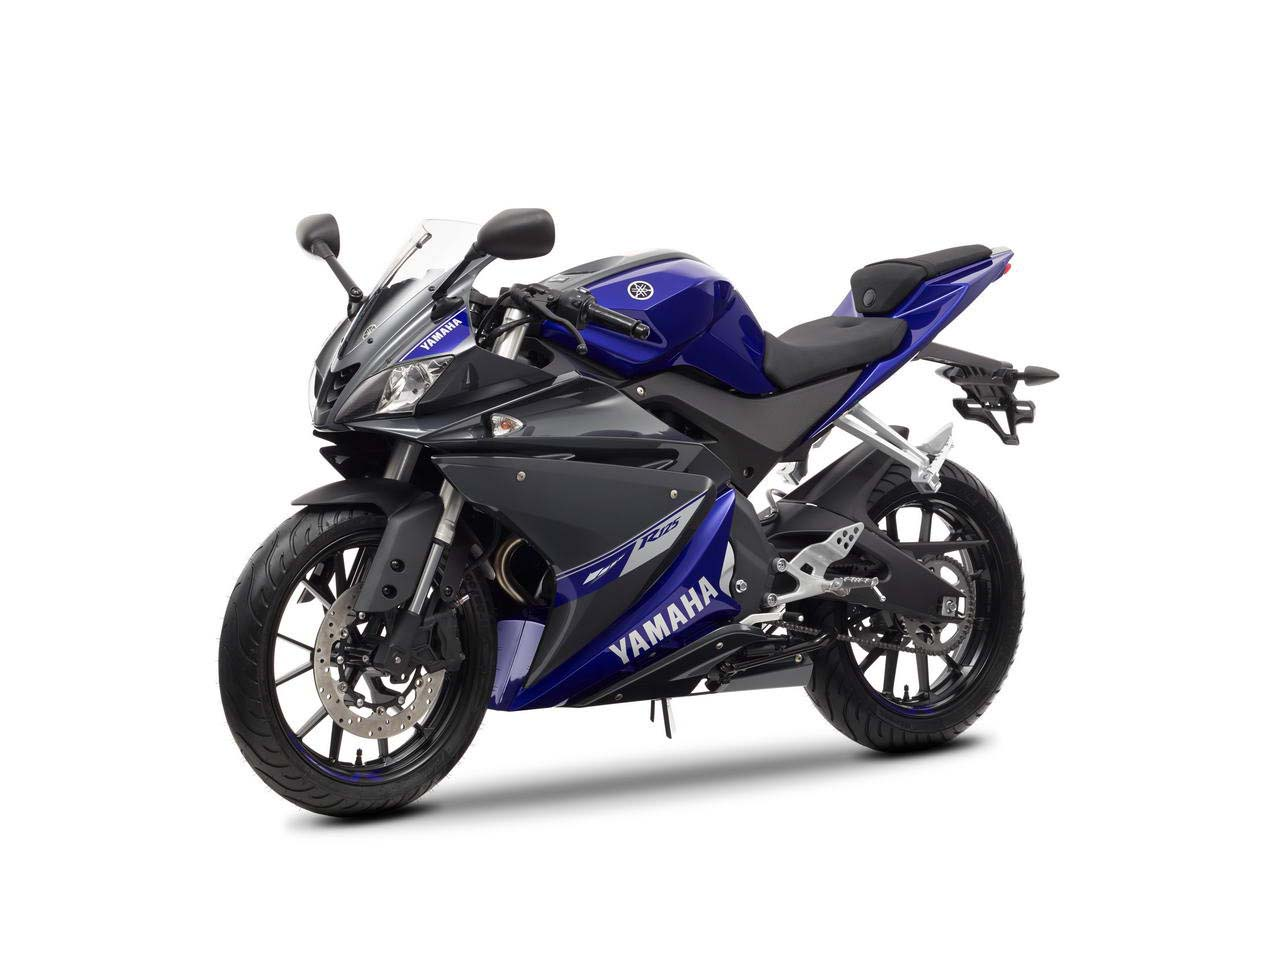 The 2014 Yamaha YZF-R125 should retail in April for €4,490 ( and